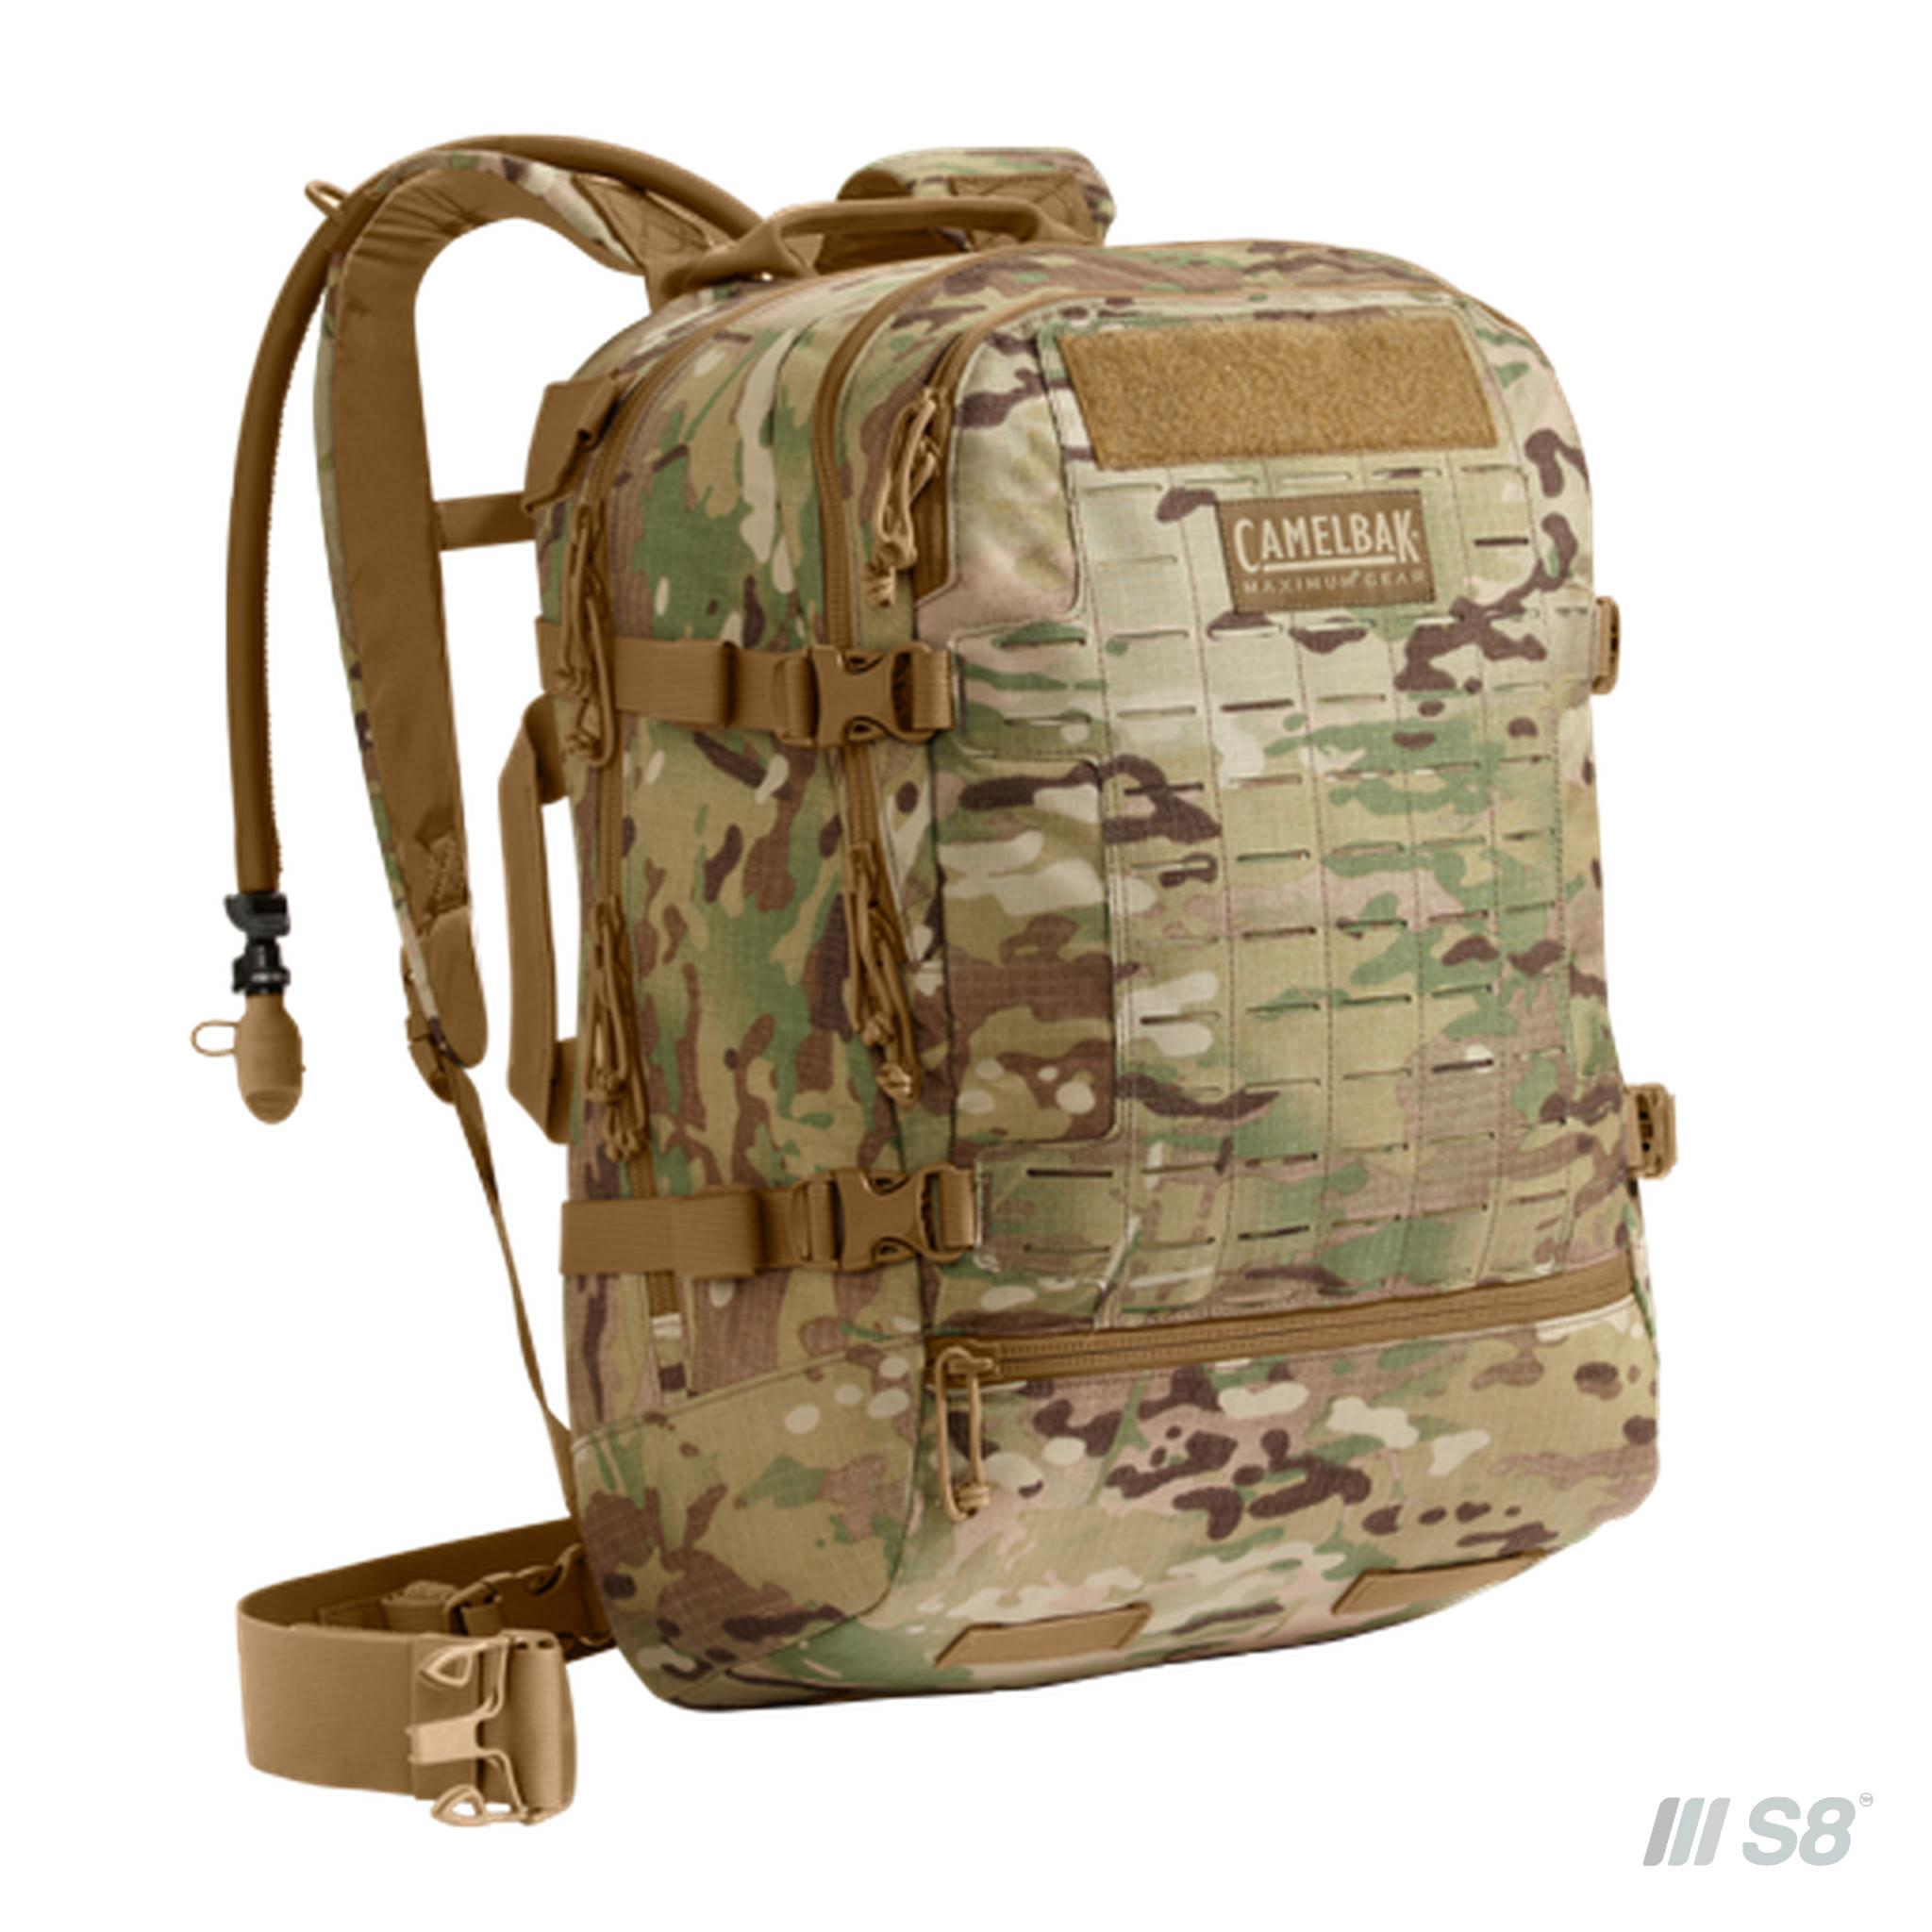 Skirmish䋢-Camelbak-S8 Products Group